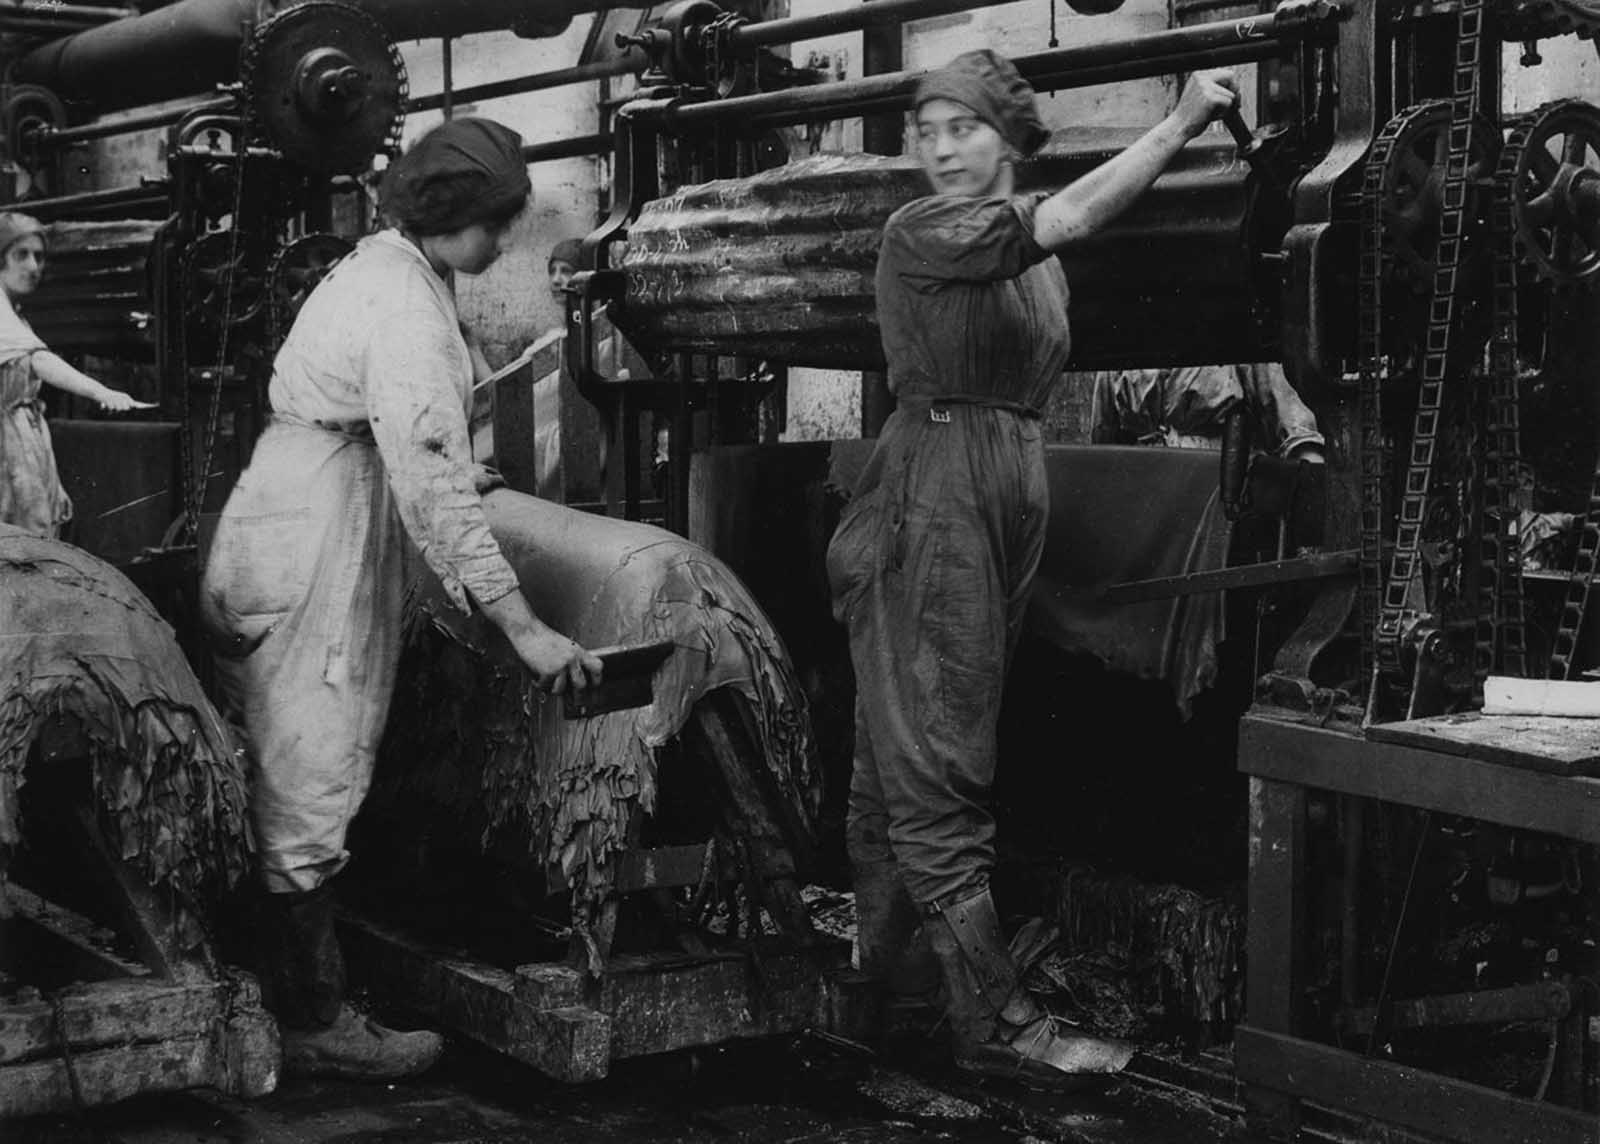 Tannery workers.